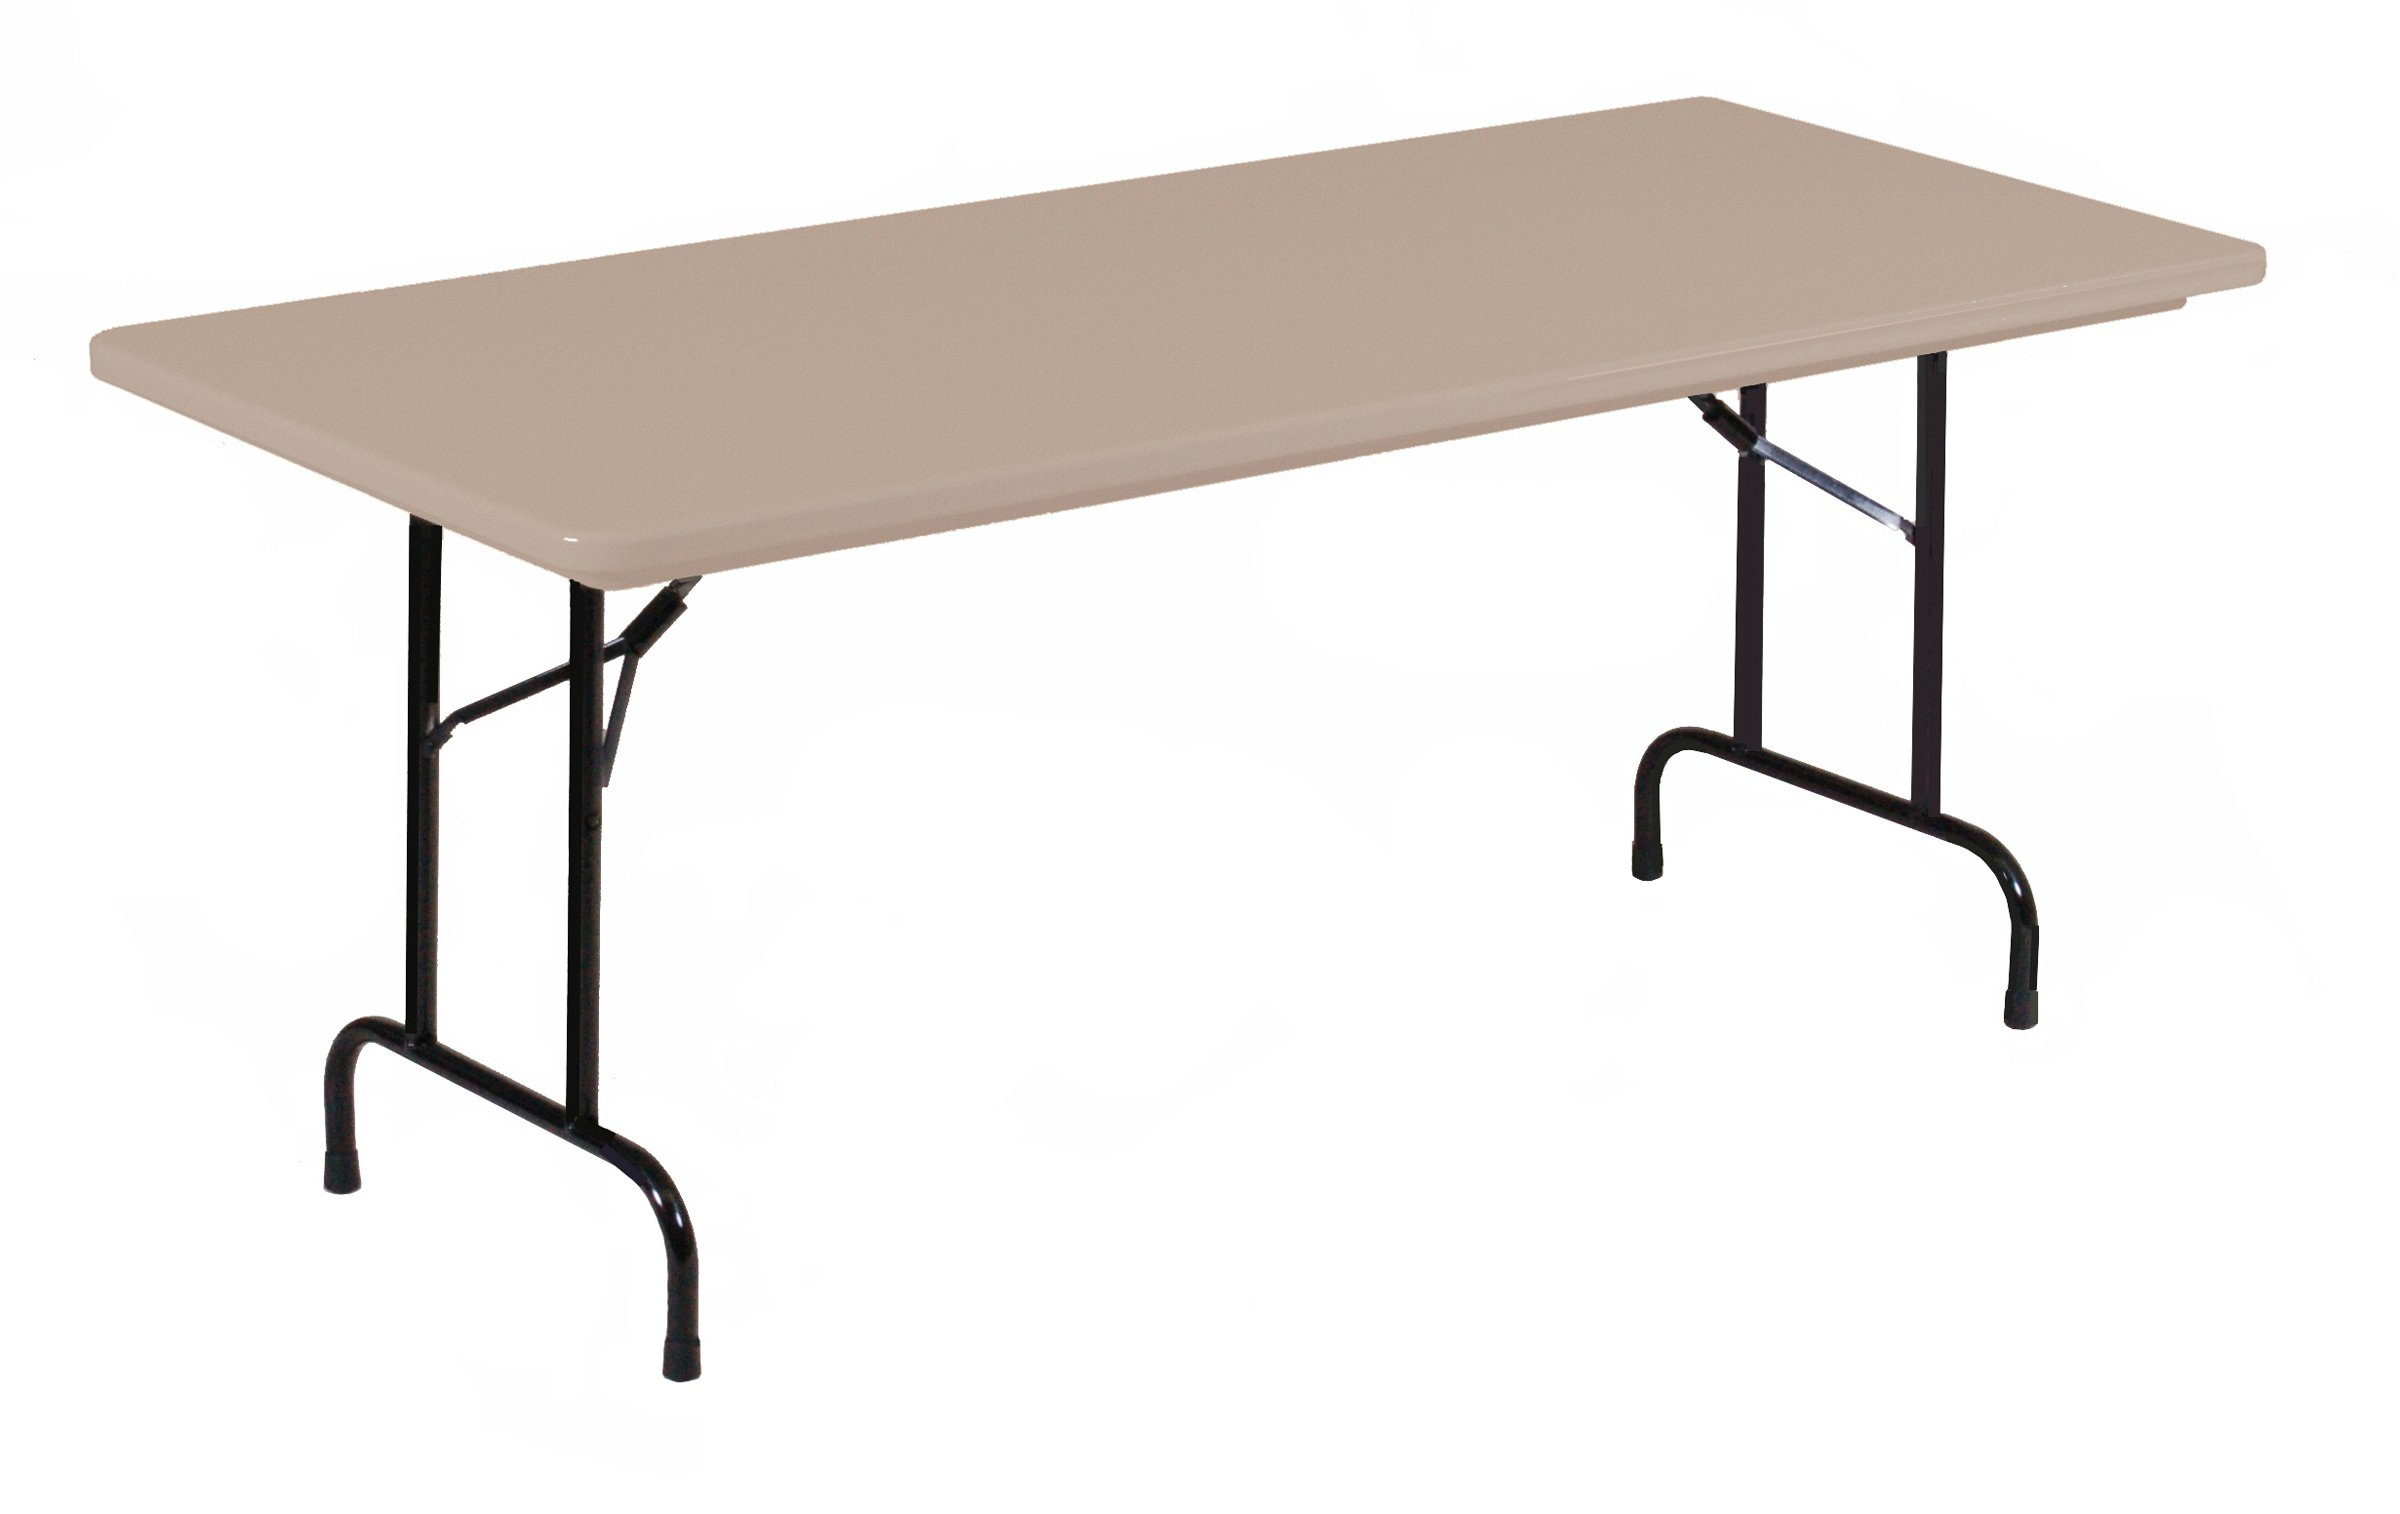 Correll R2448-24 R Series, Blow Molded Plastic Commercial Duty Folding Table, Rectangular, 24'' x 48'', Mocha Granite , Custom Built to Order in the USA